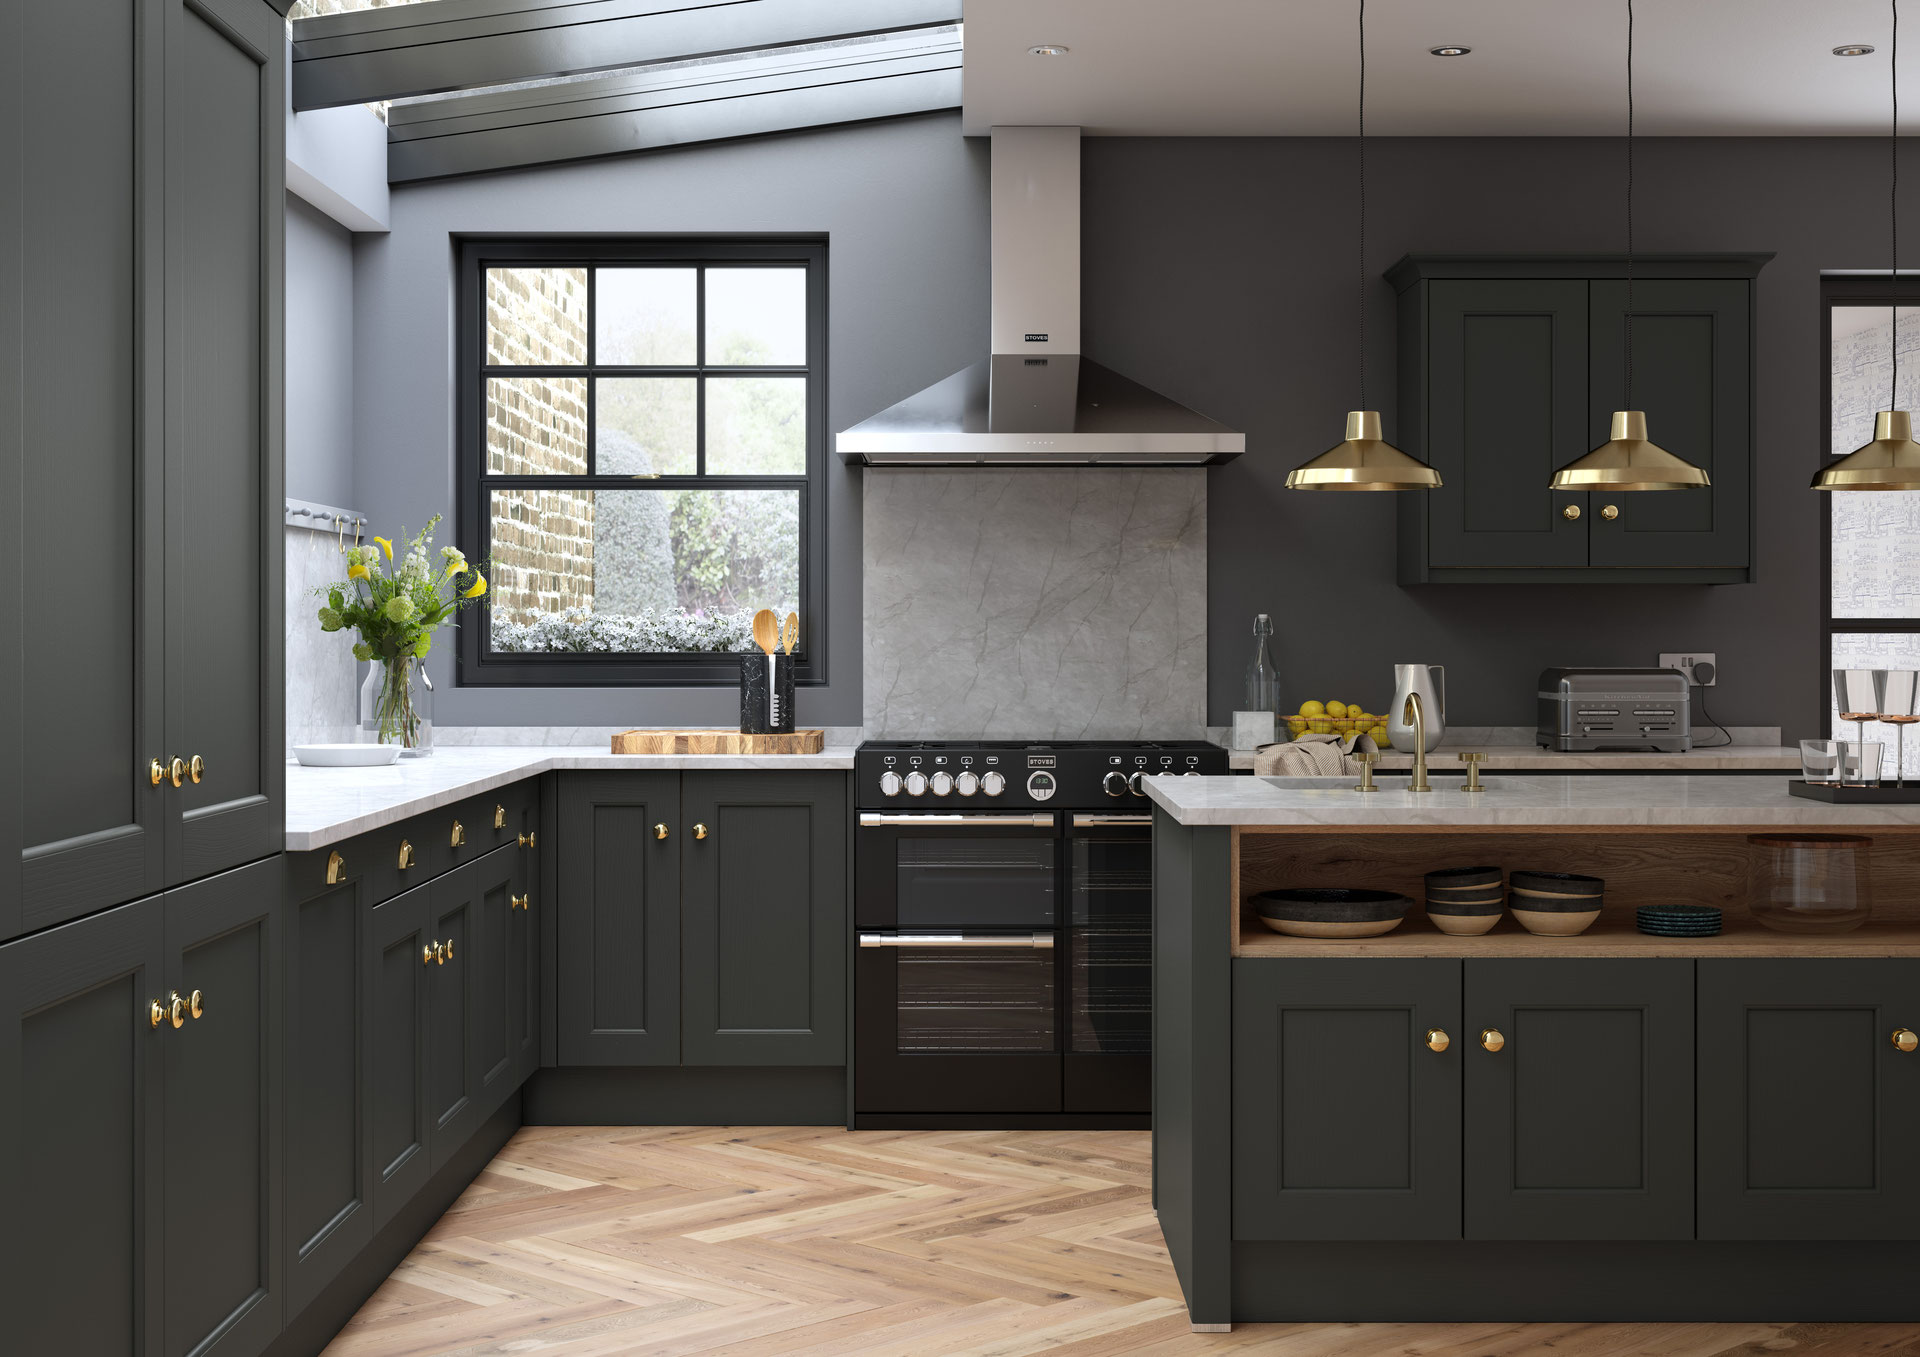 quality bespoke kitchens at superb prices. - brighton & hove